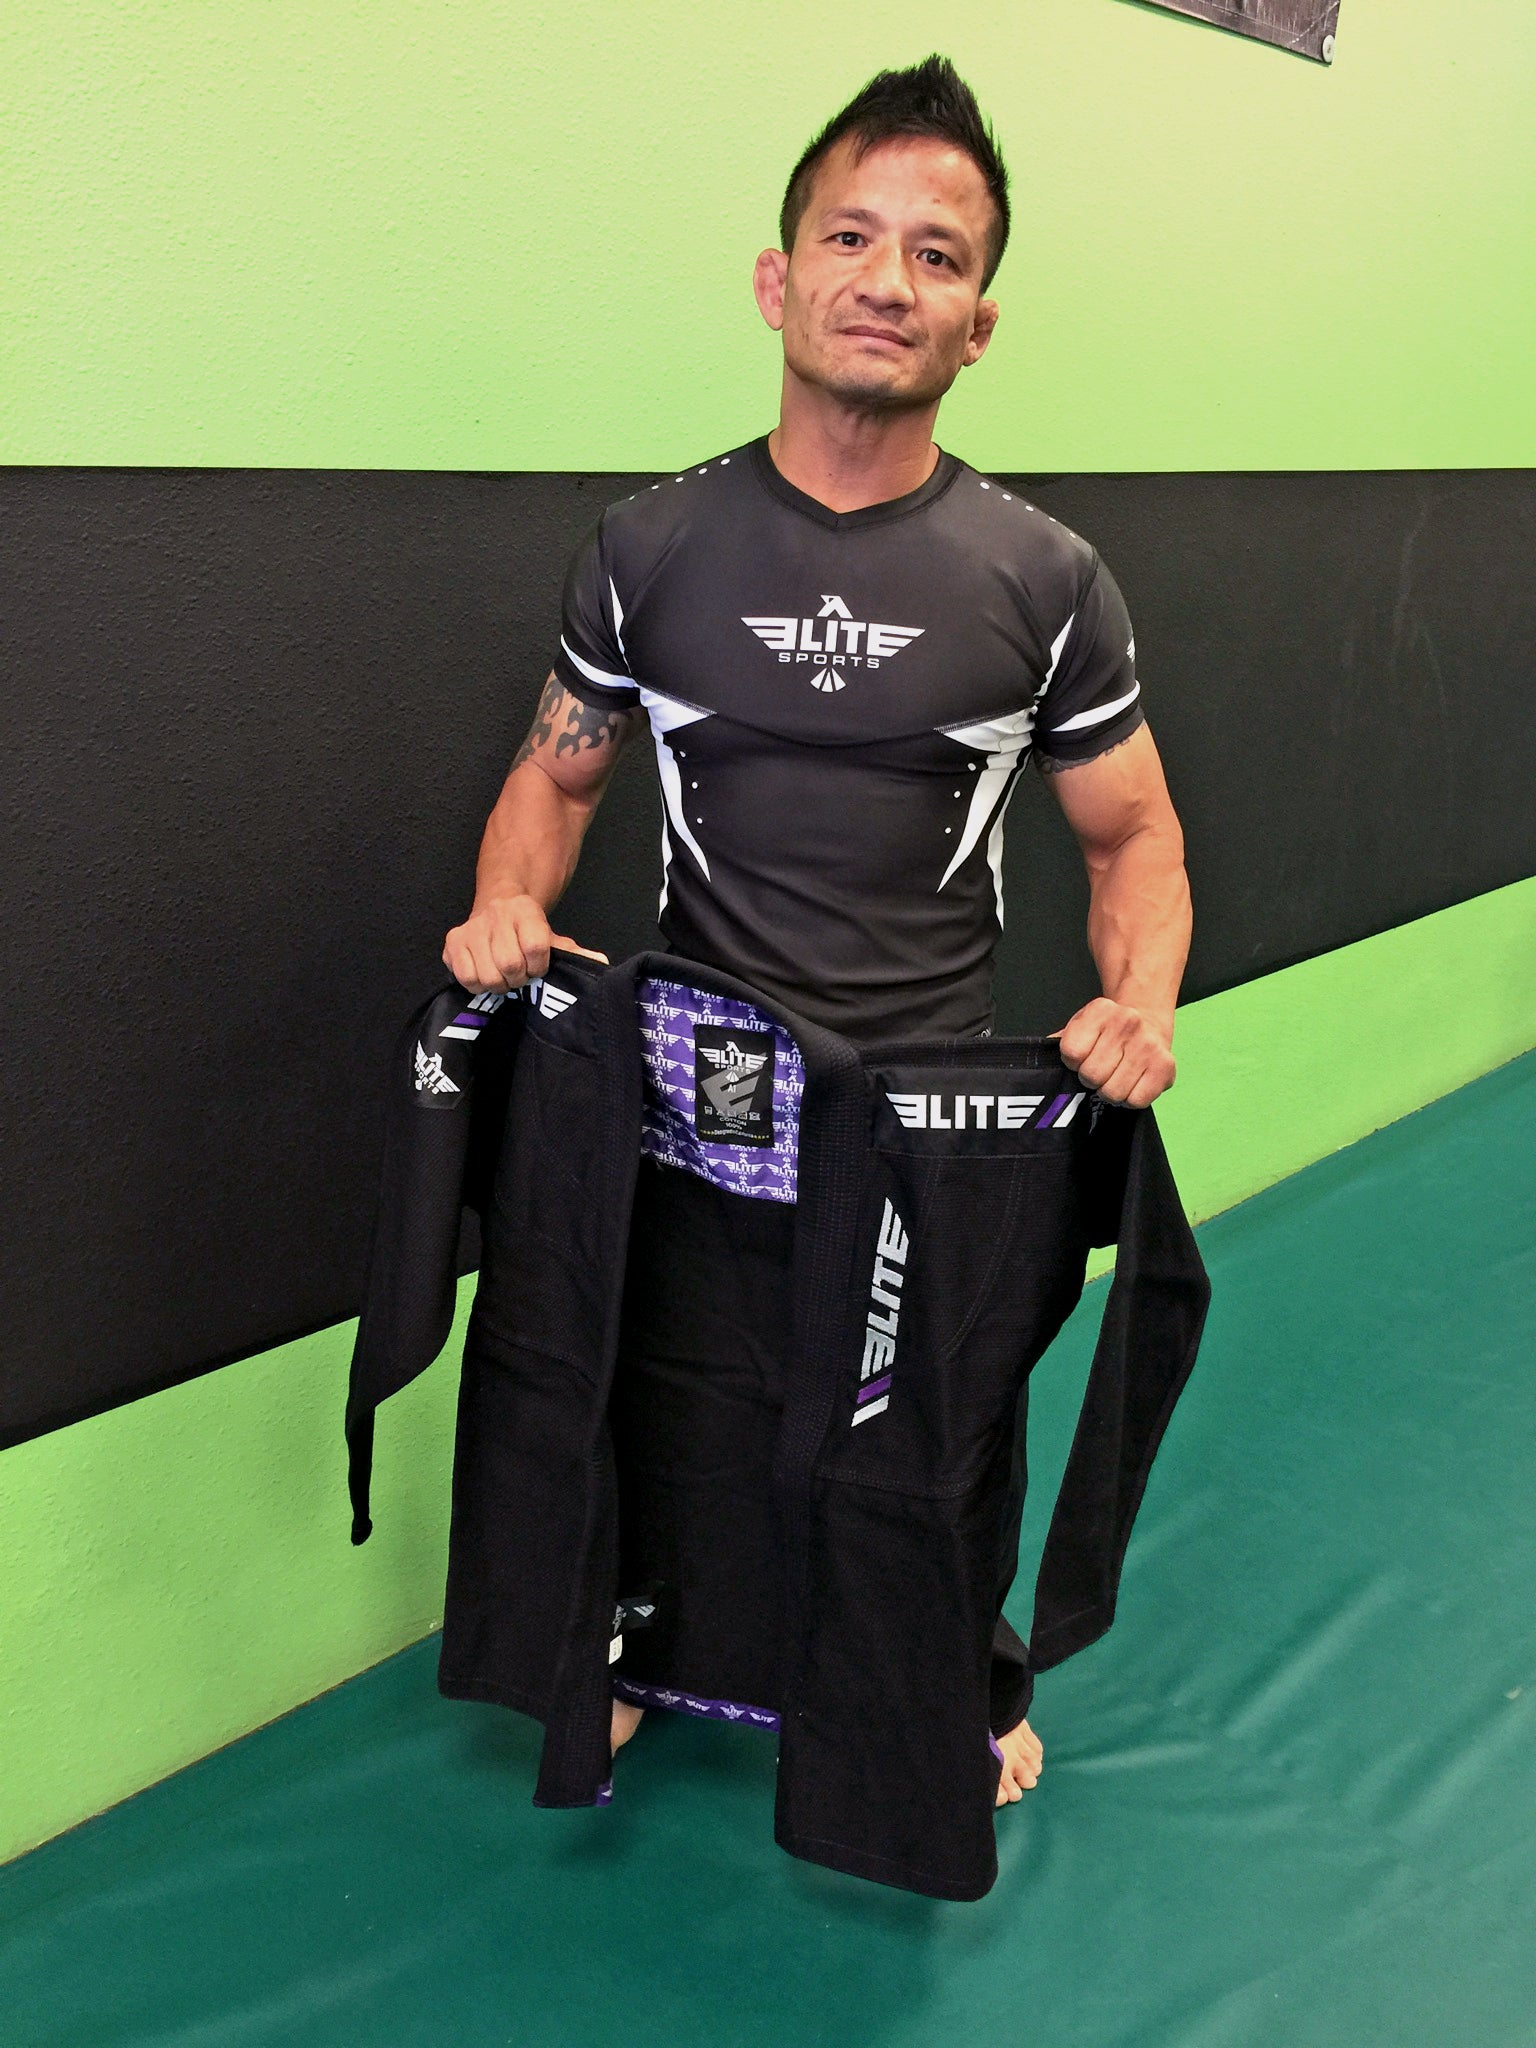 Elite Sports Team Elite Bjj Fighter Jet Lee  Image6